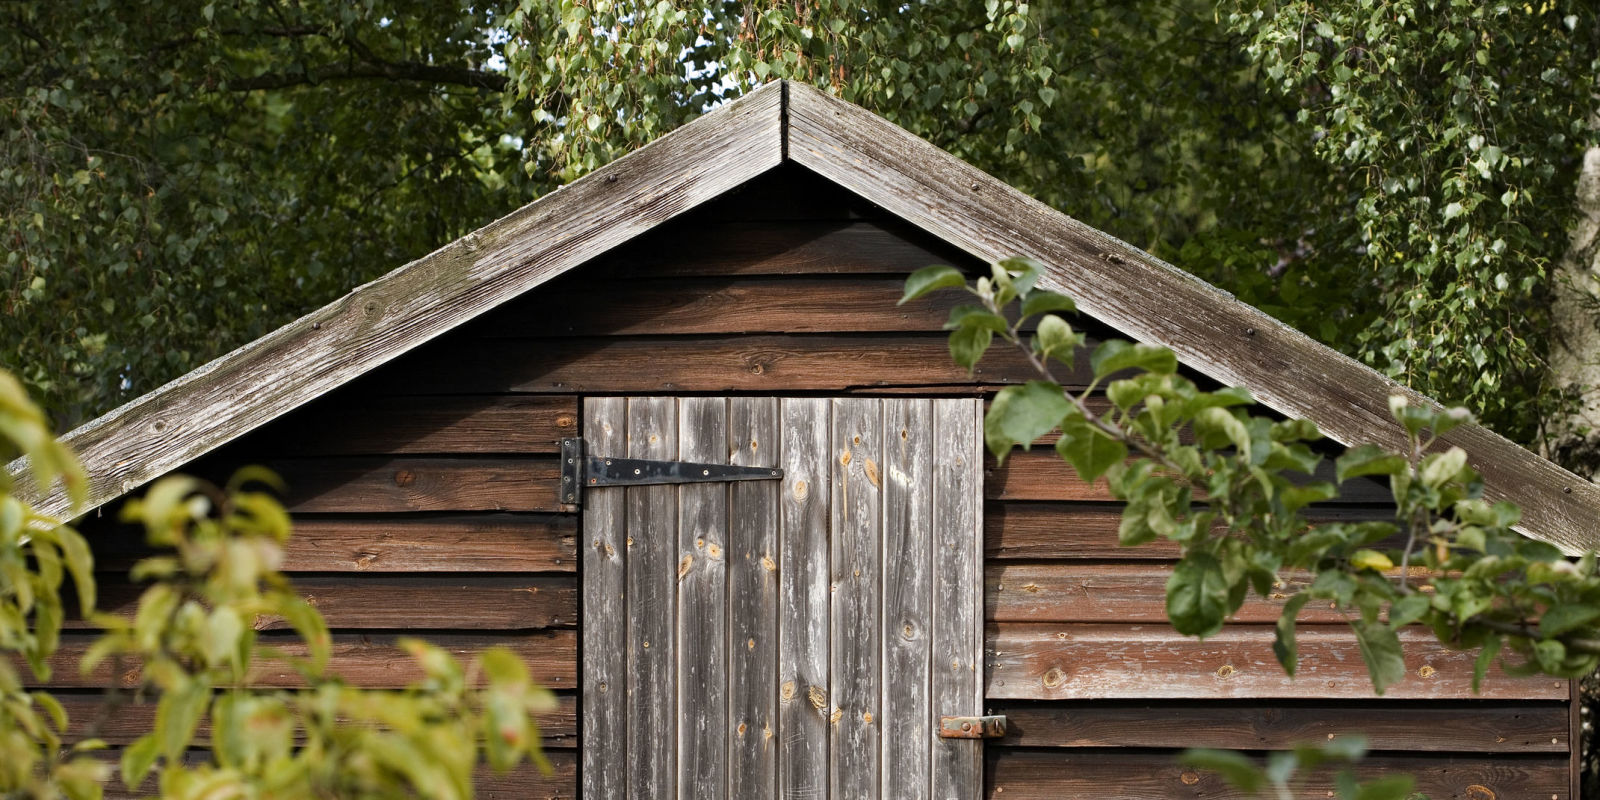 Garden Shed   Front On View Of English Garden Shed Surrounded By Trees